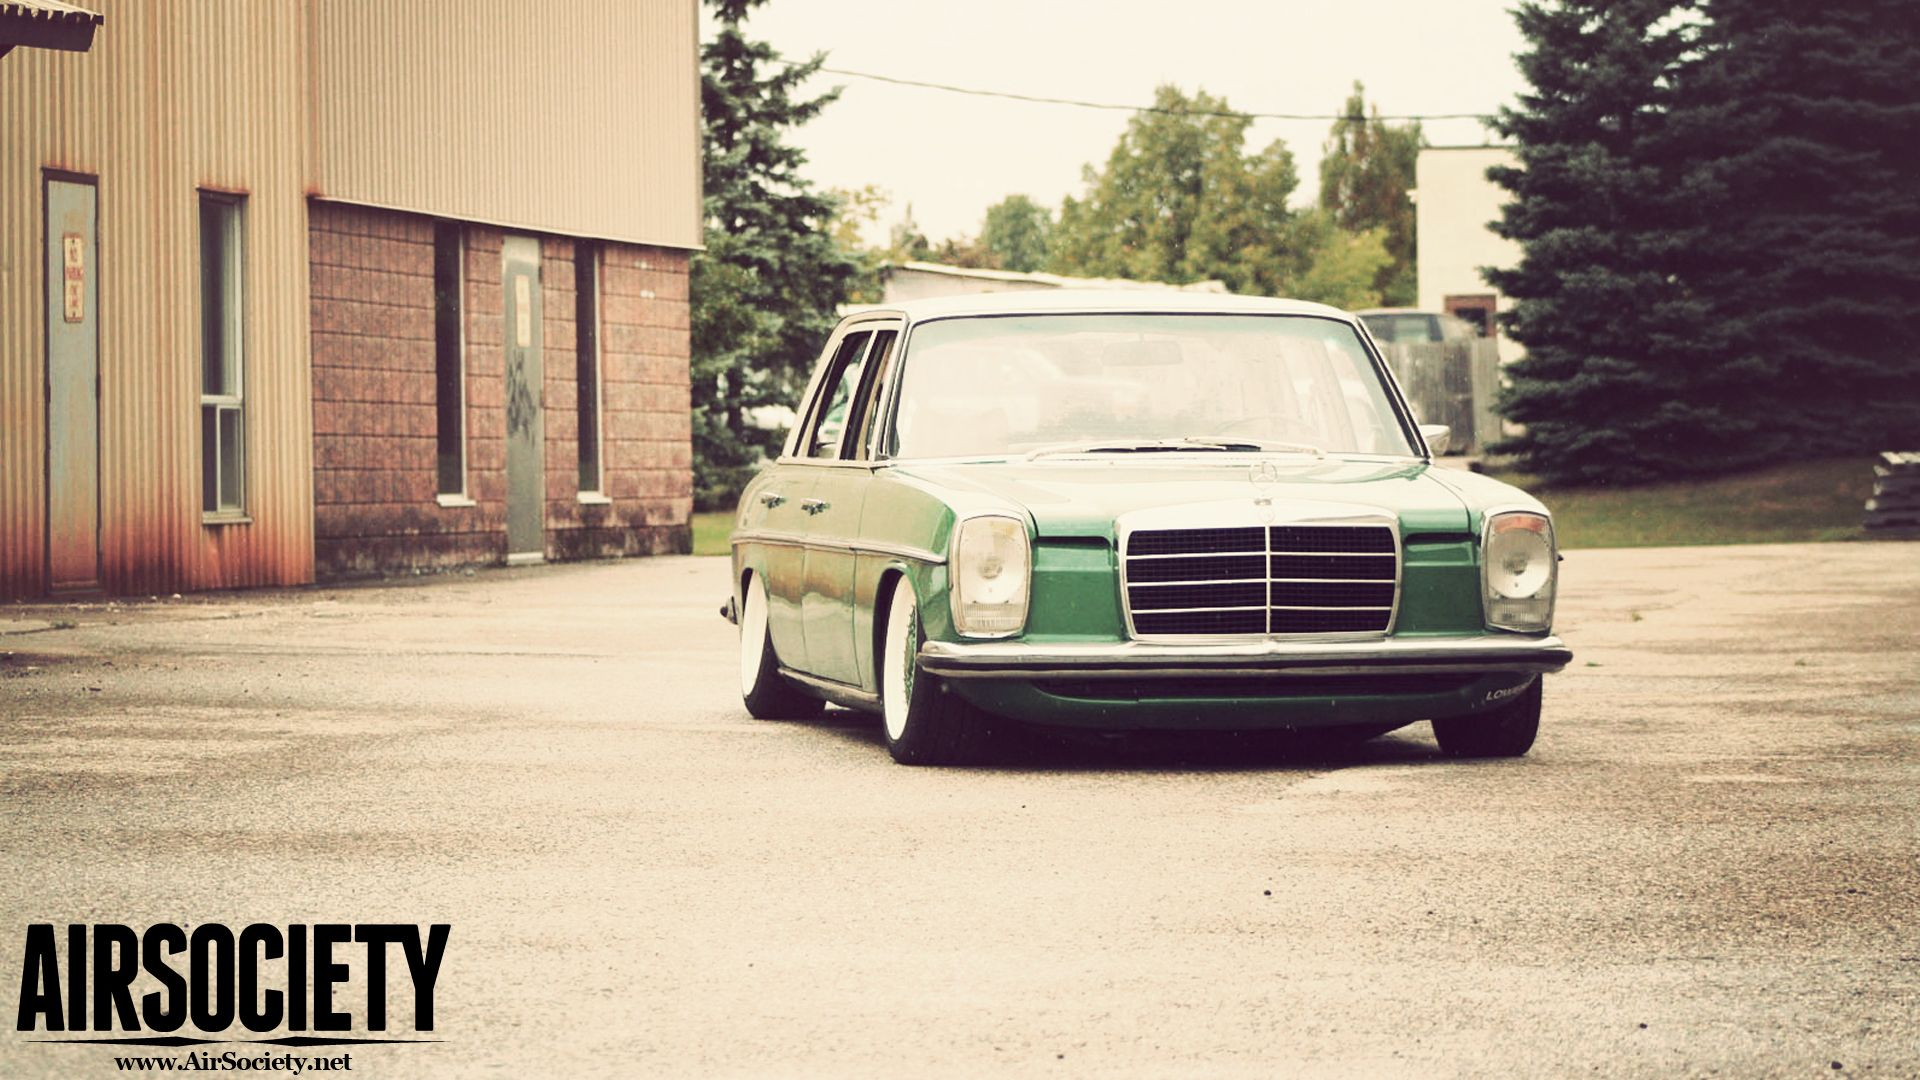 Bagged Mercedes 300D W115 Wallpapers AIRSOCIETY Rides 1920x1080